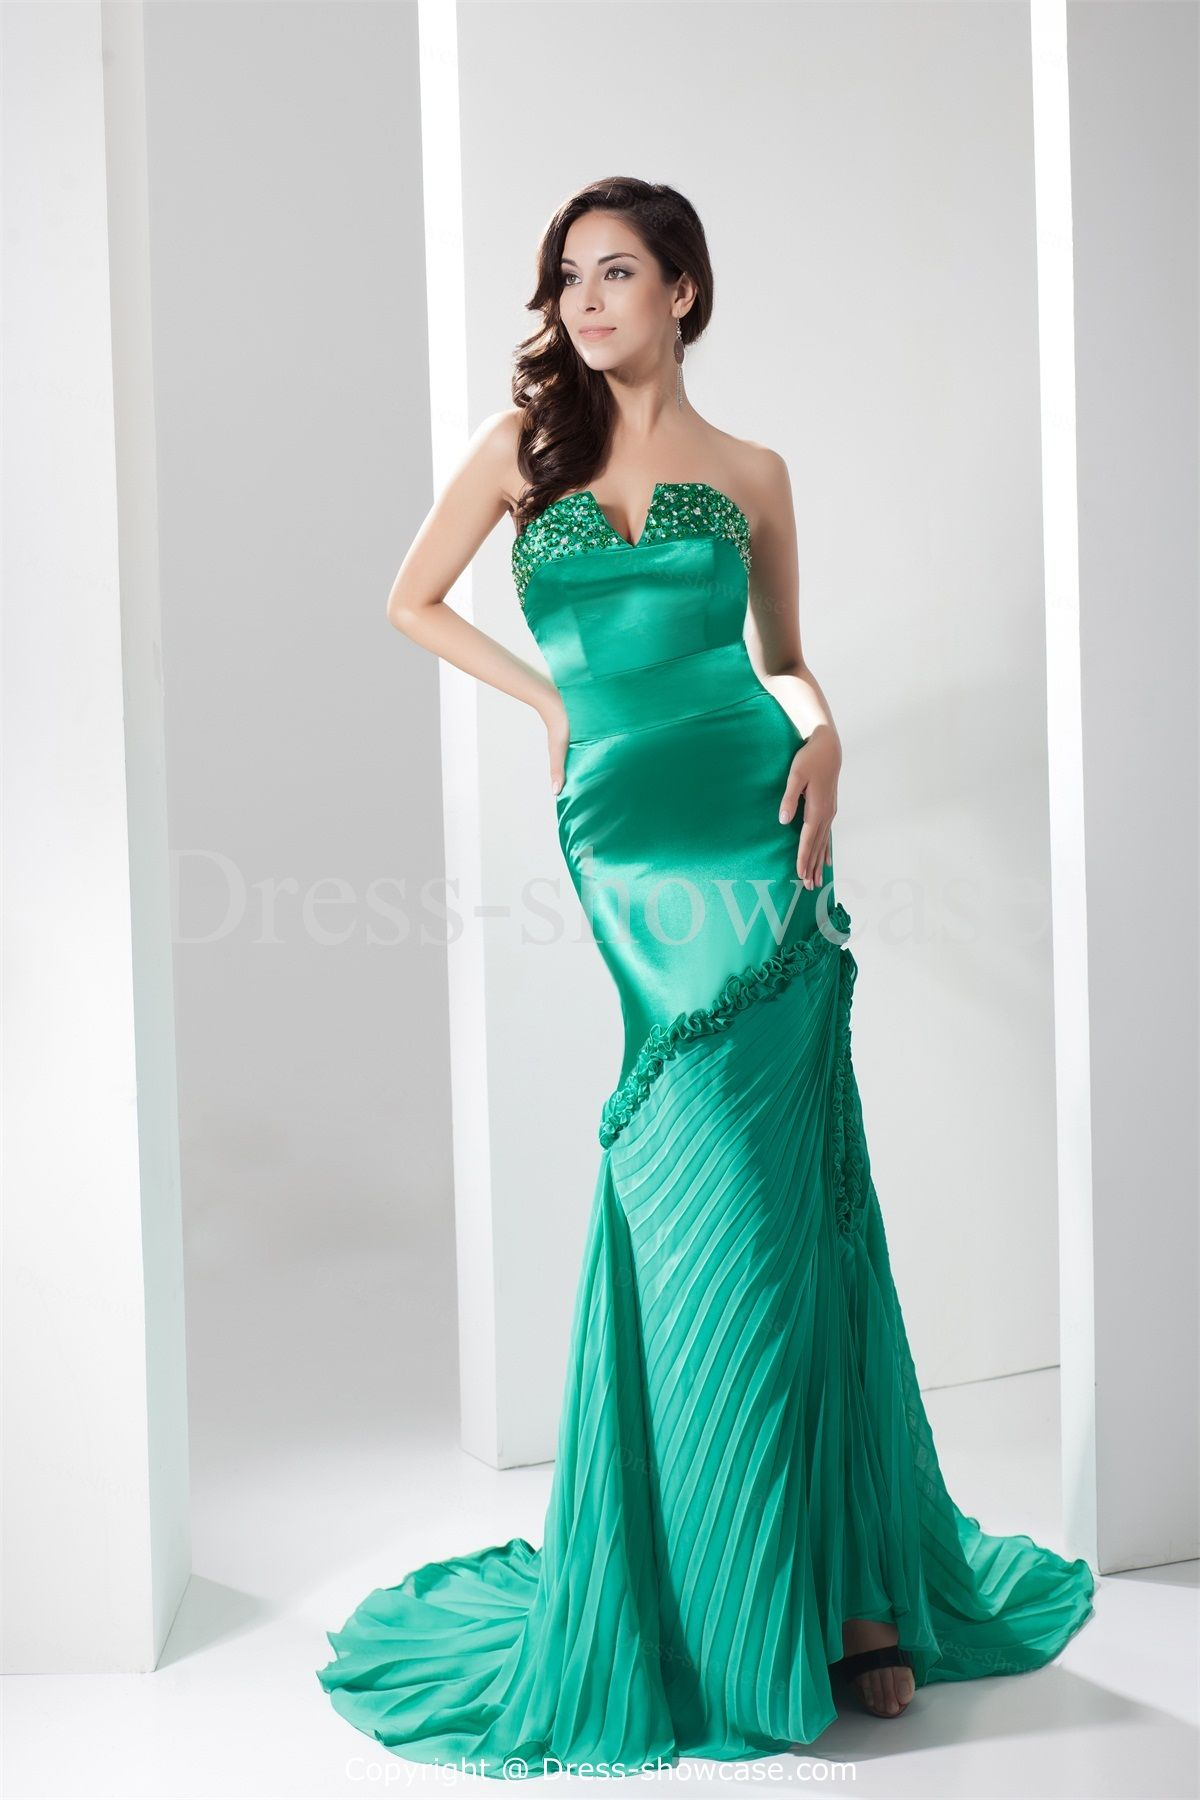 green wedding dresses | ... Special Occasion Dresses >Caribbean ...